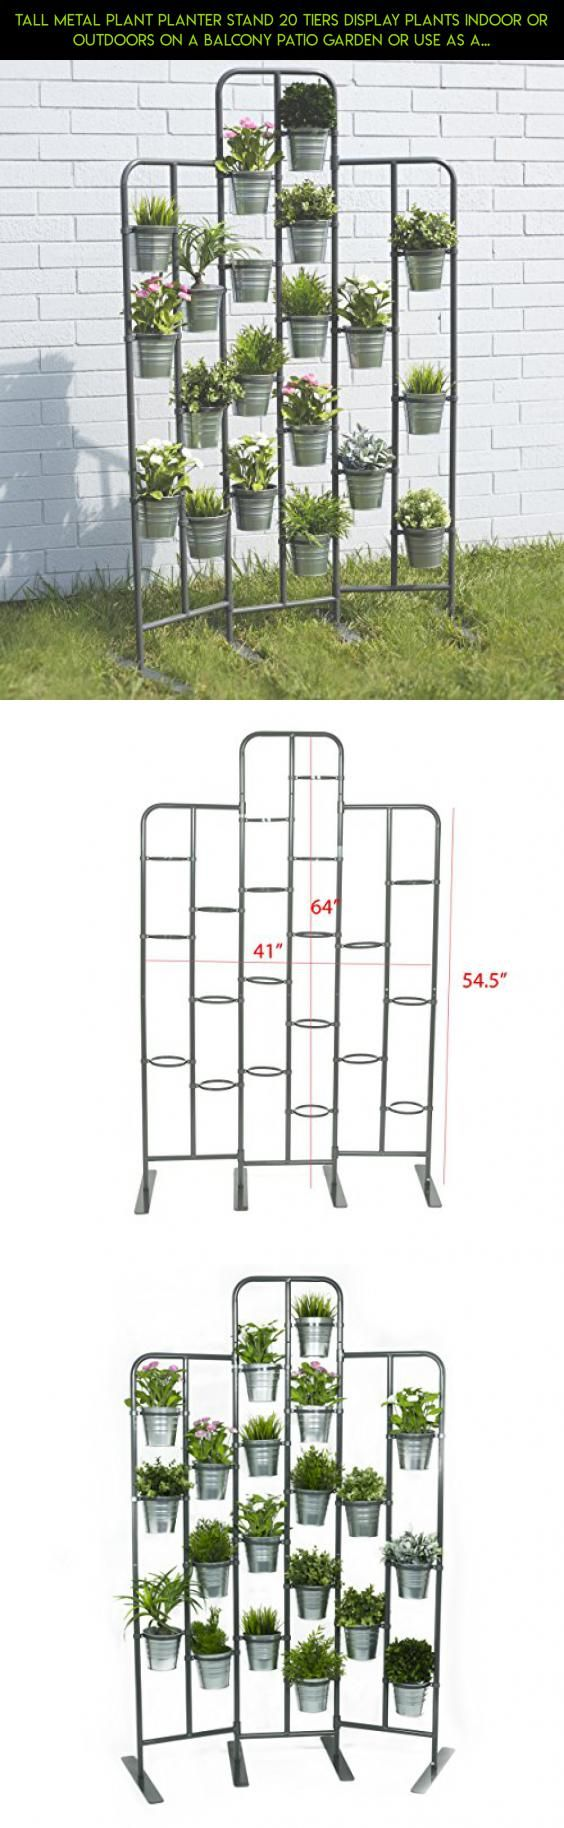 Tall metal plant planter stand tiers display plants indoor or